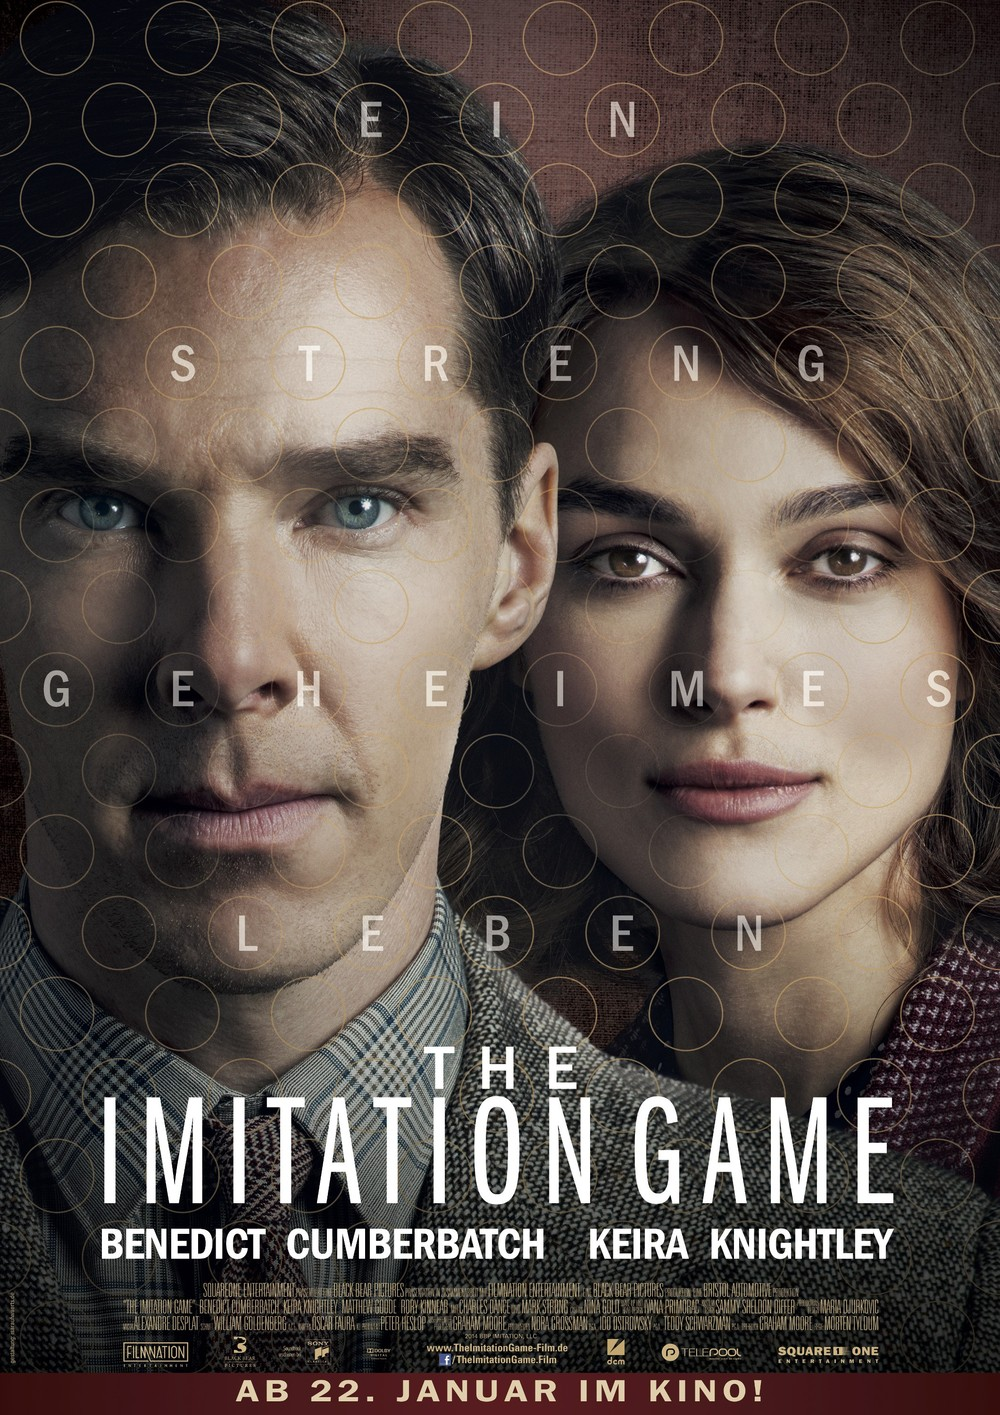 the imitation game dvd release date